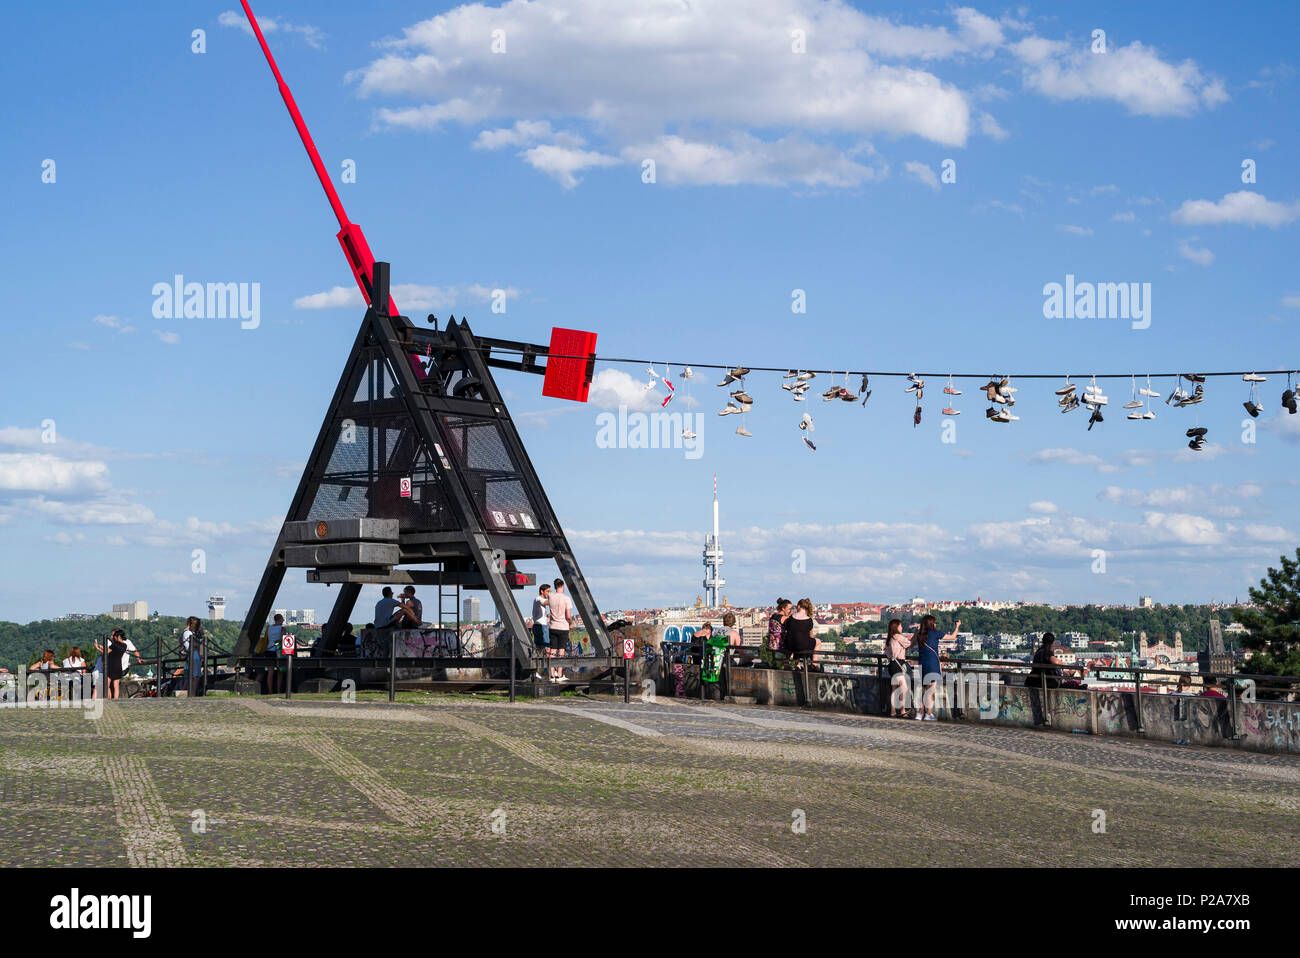 Prague. Czech Republic. People gather at the Metronome in Letná Park for views across the city. - Stock Image